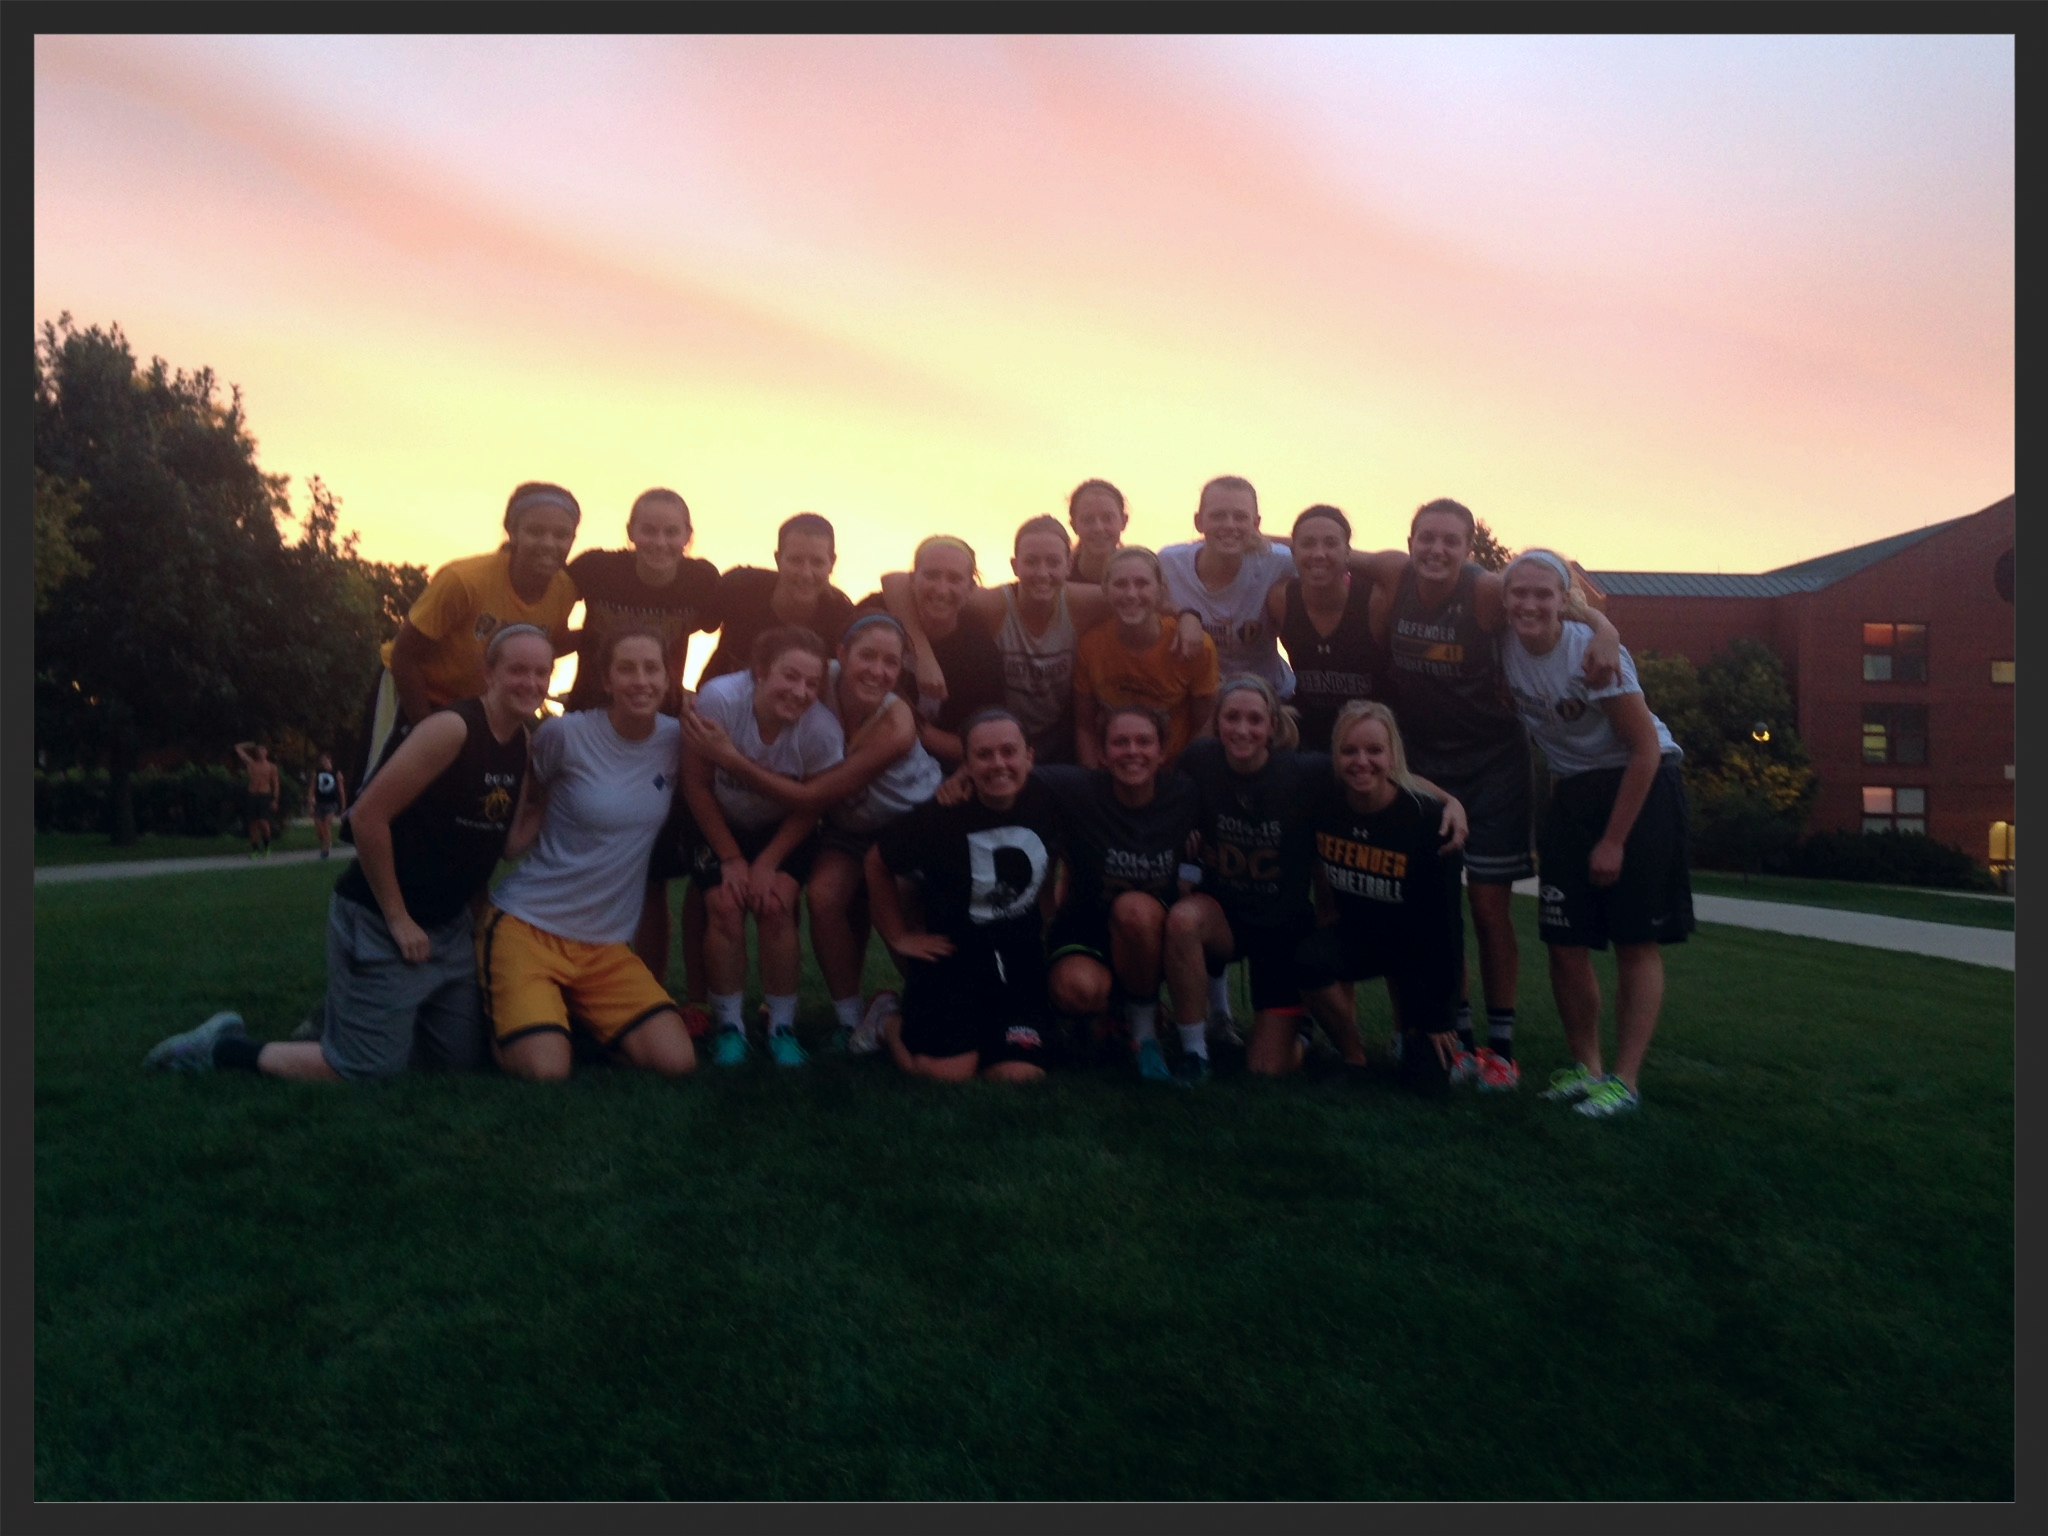 The Dordt Women's Basketball team after a 6am preseason workout. We decided we had to capture the beautiful sunset God blessed us with and pure relief of being done with our morning workout. :)